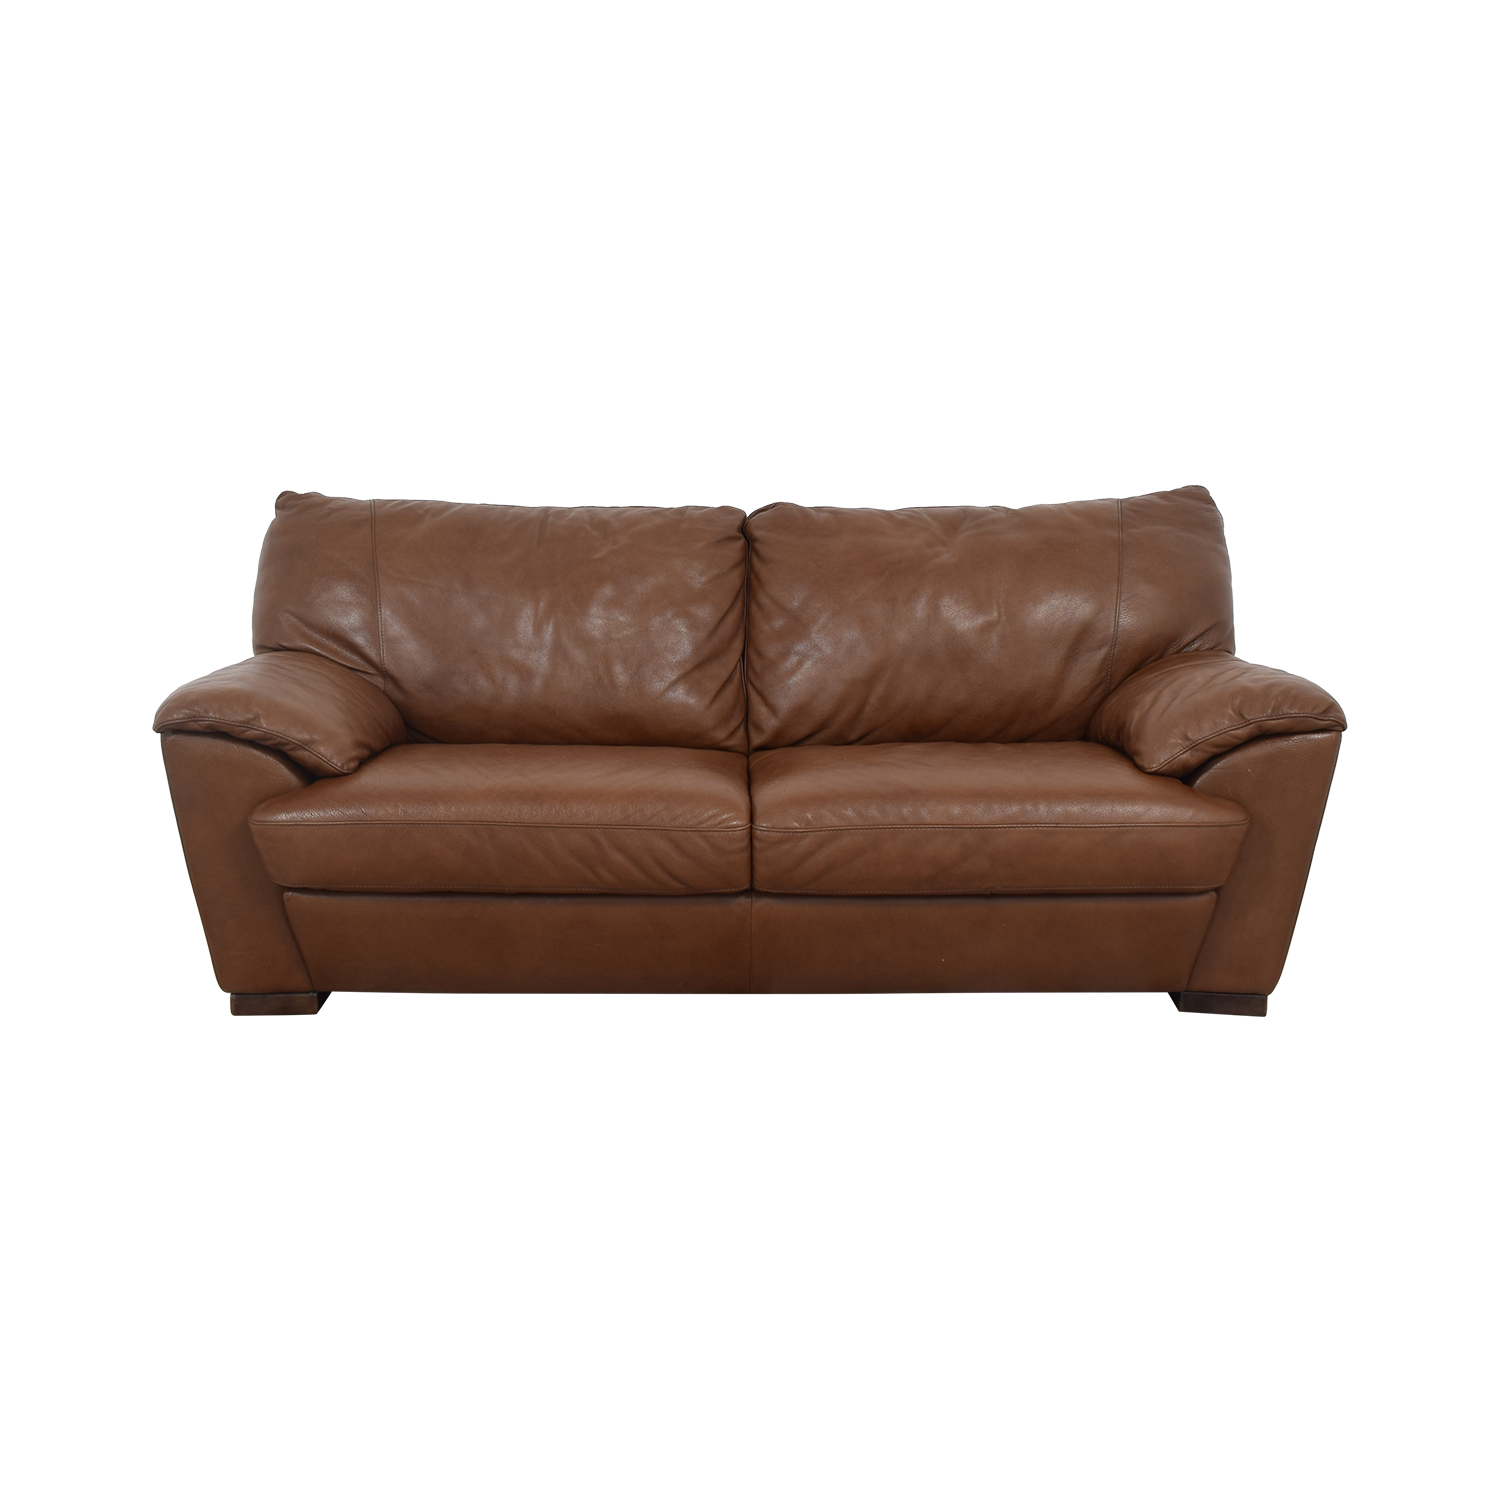 Natuzzi Natuzzi Three Seat Loveseat ma